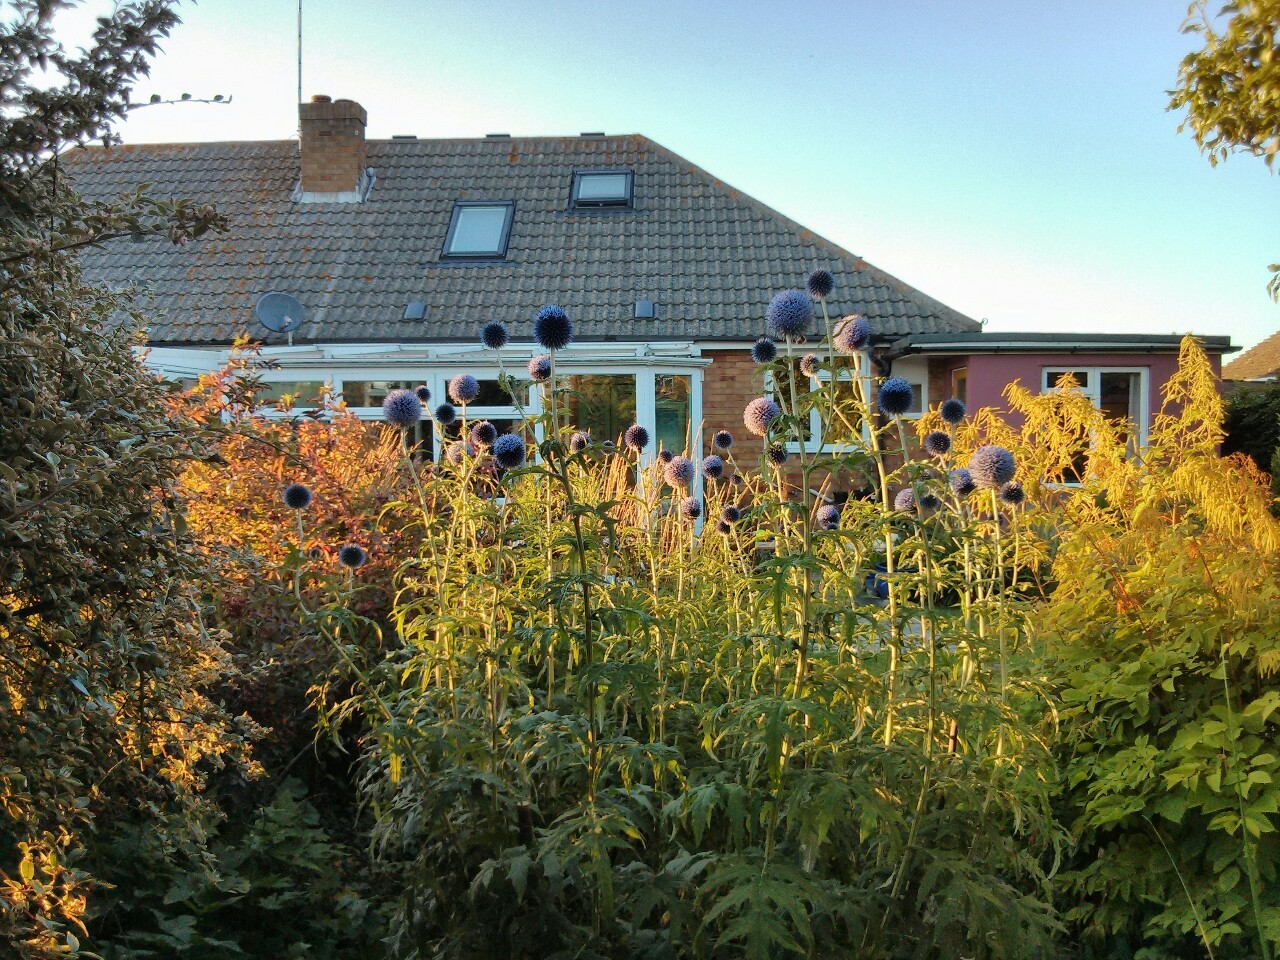 A beautiful Sunday evening in the garden.